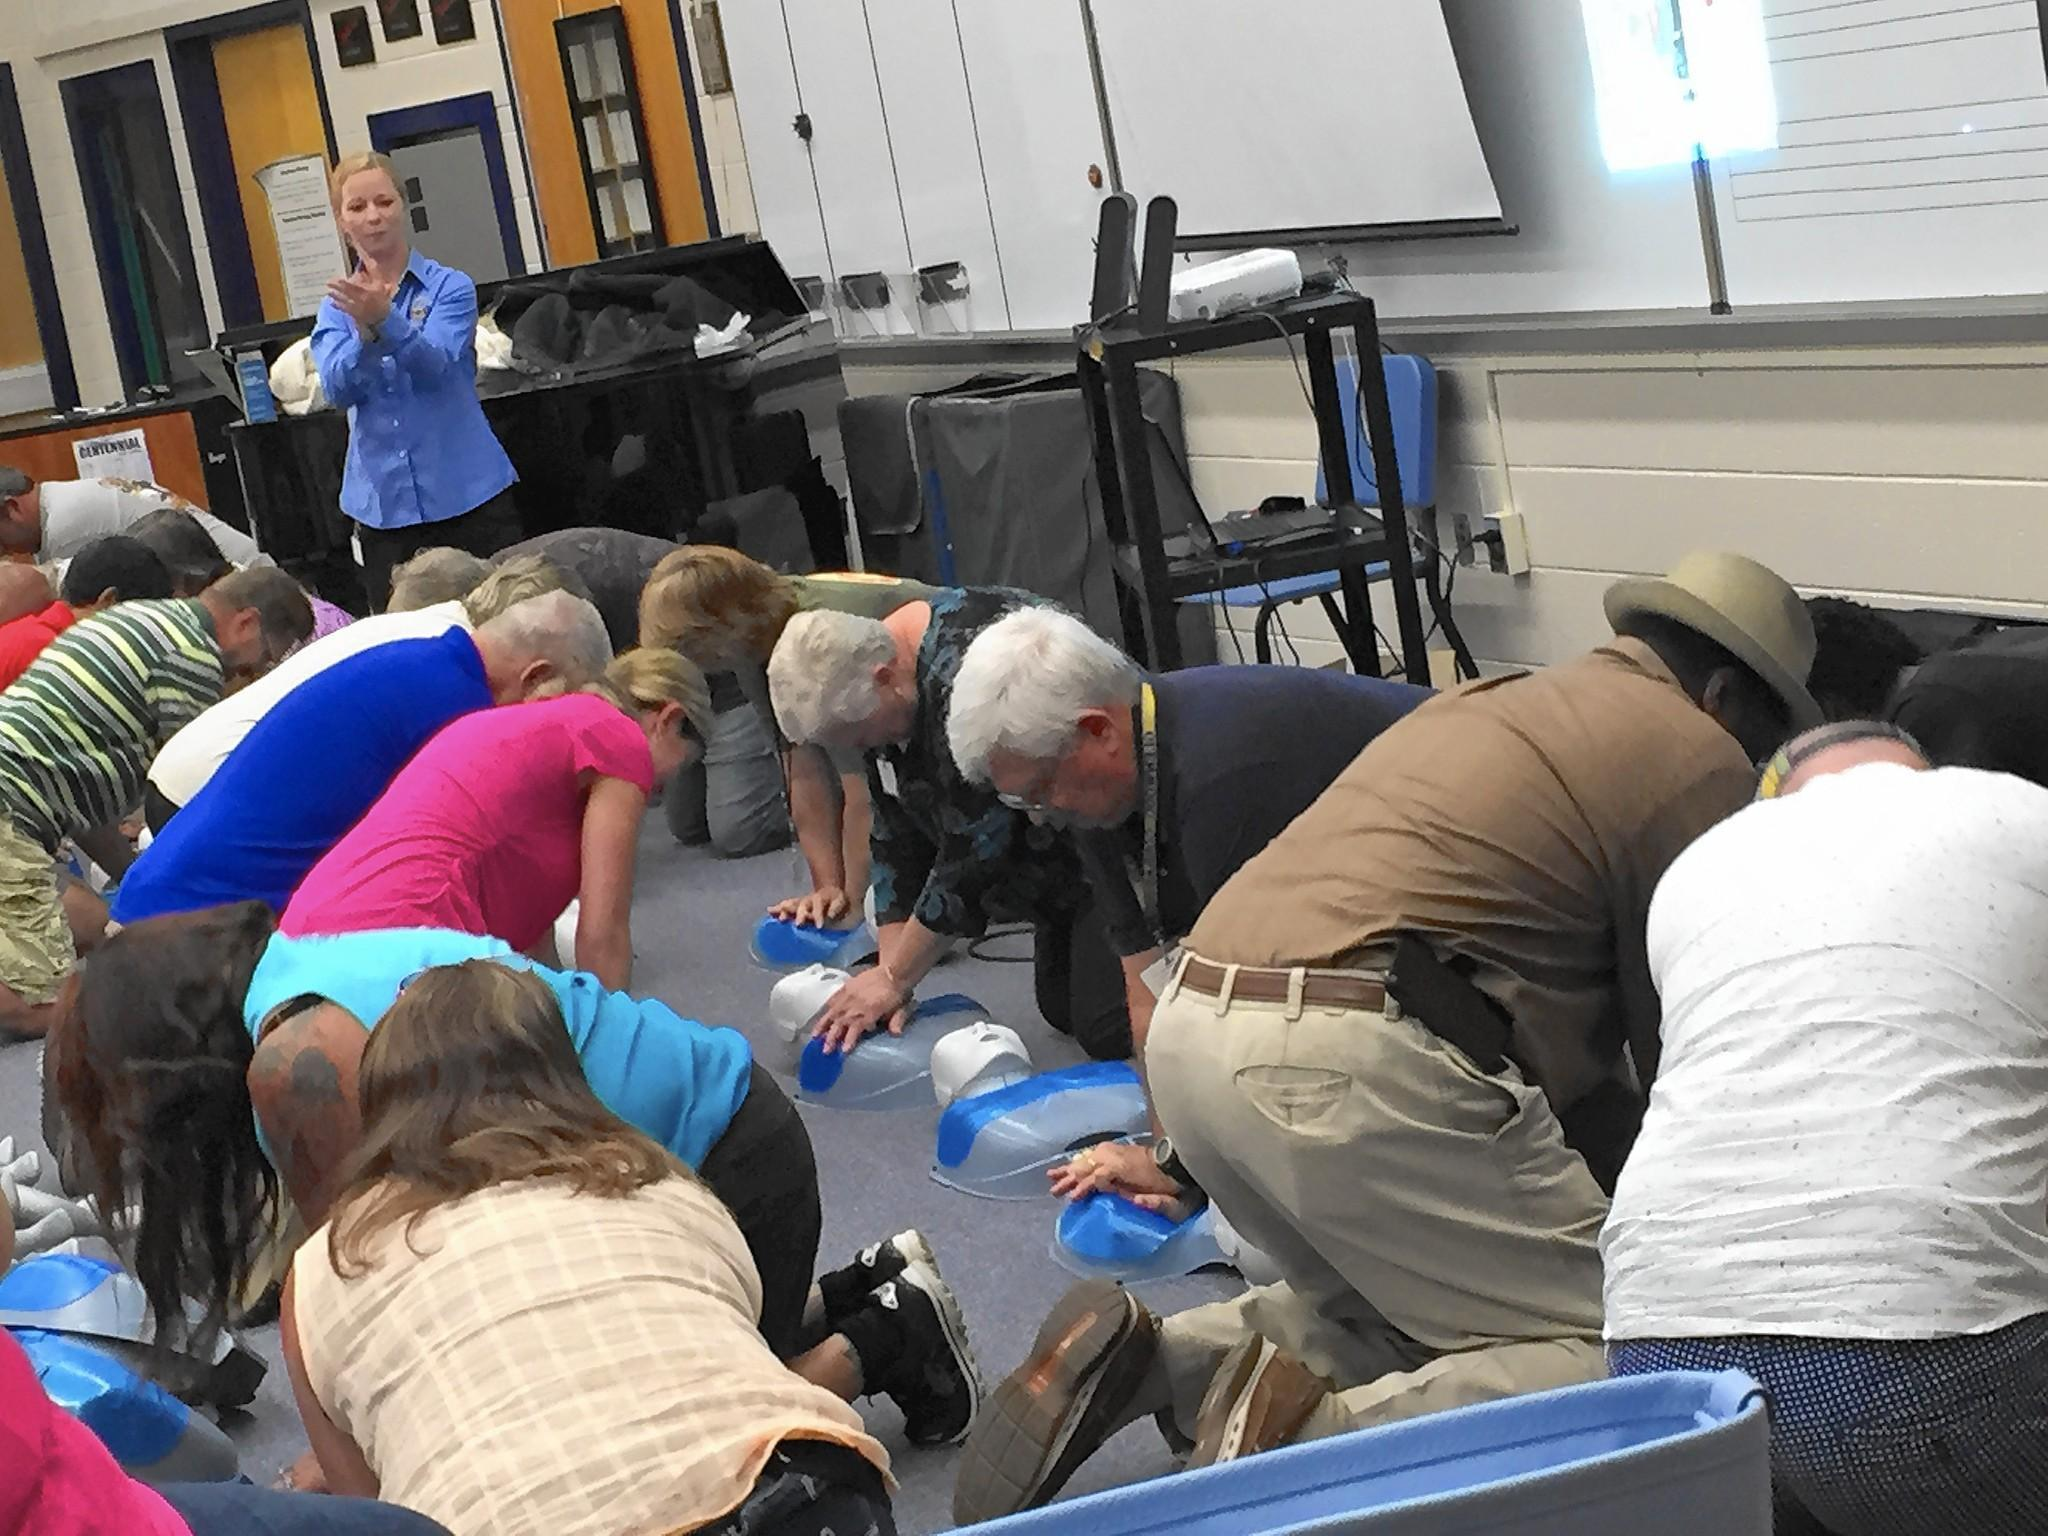 Hcpss bus drivers take hands on approach to cpr training hcpss bus drivers take hands on approach to cpr training columbia flier xflitez Image collections